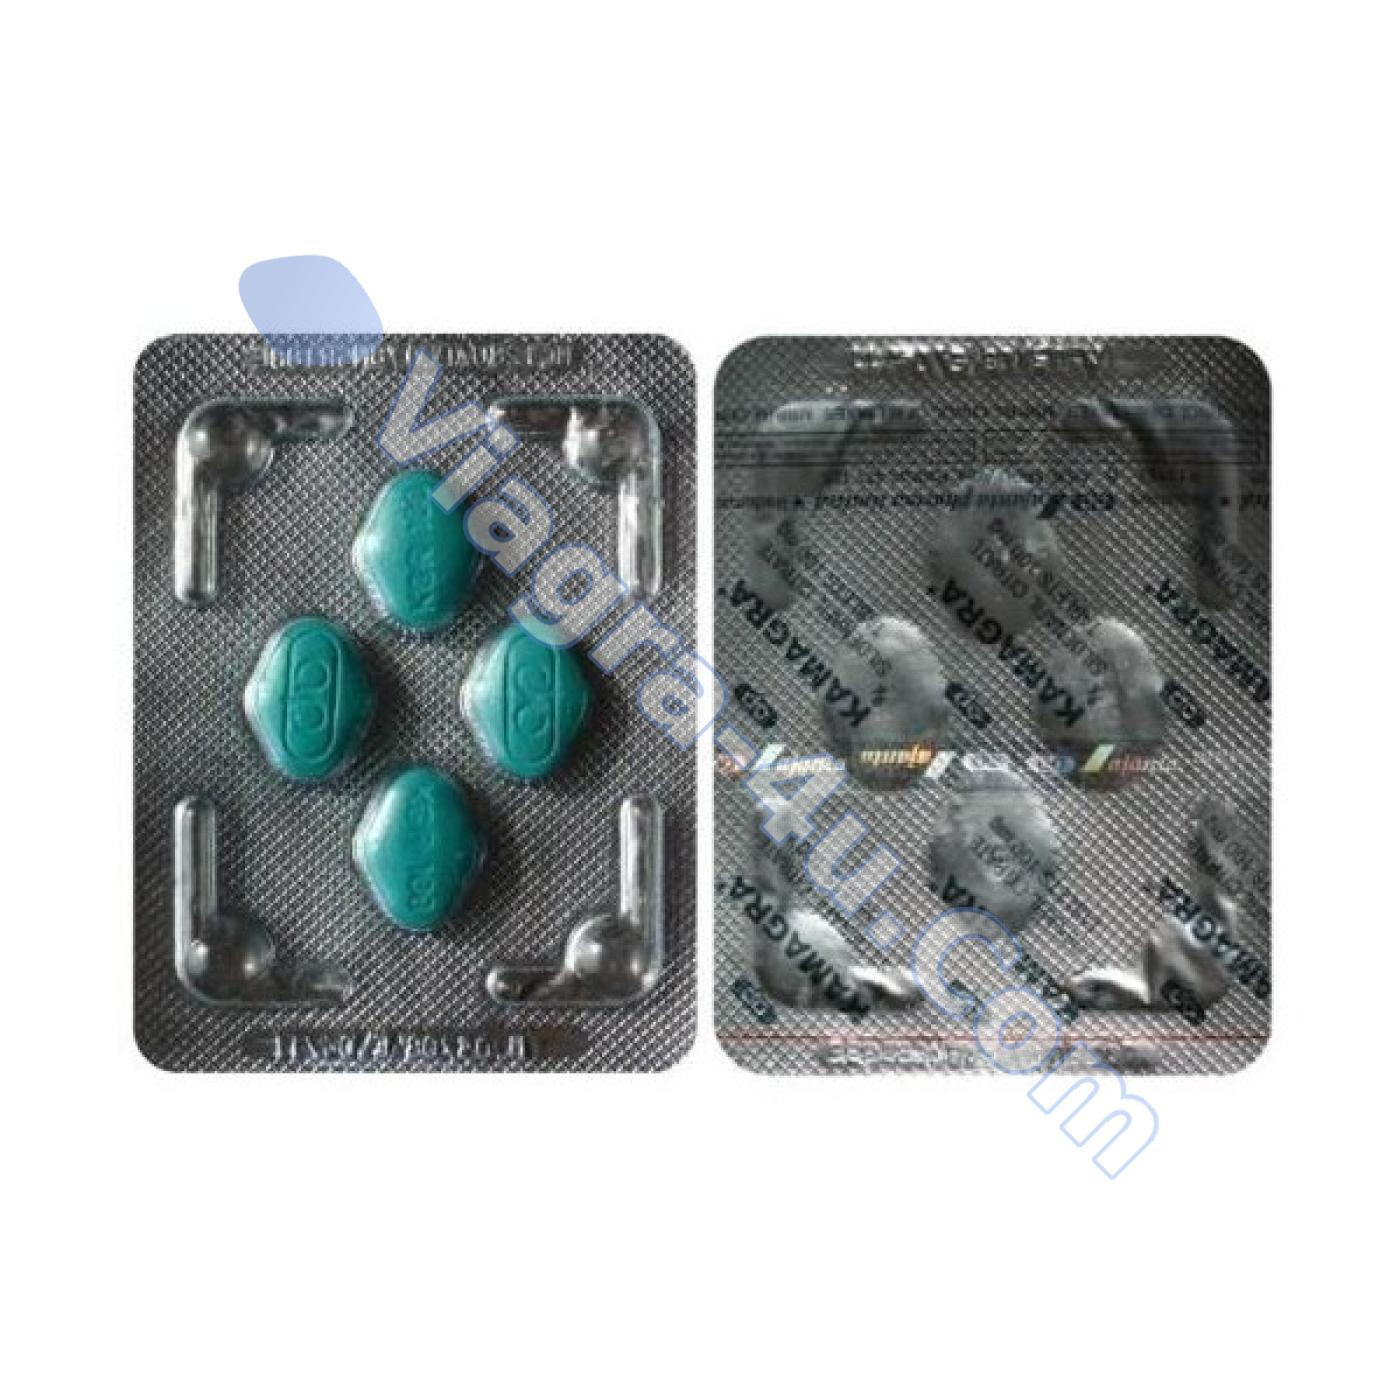 best online pharmacy for clomid